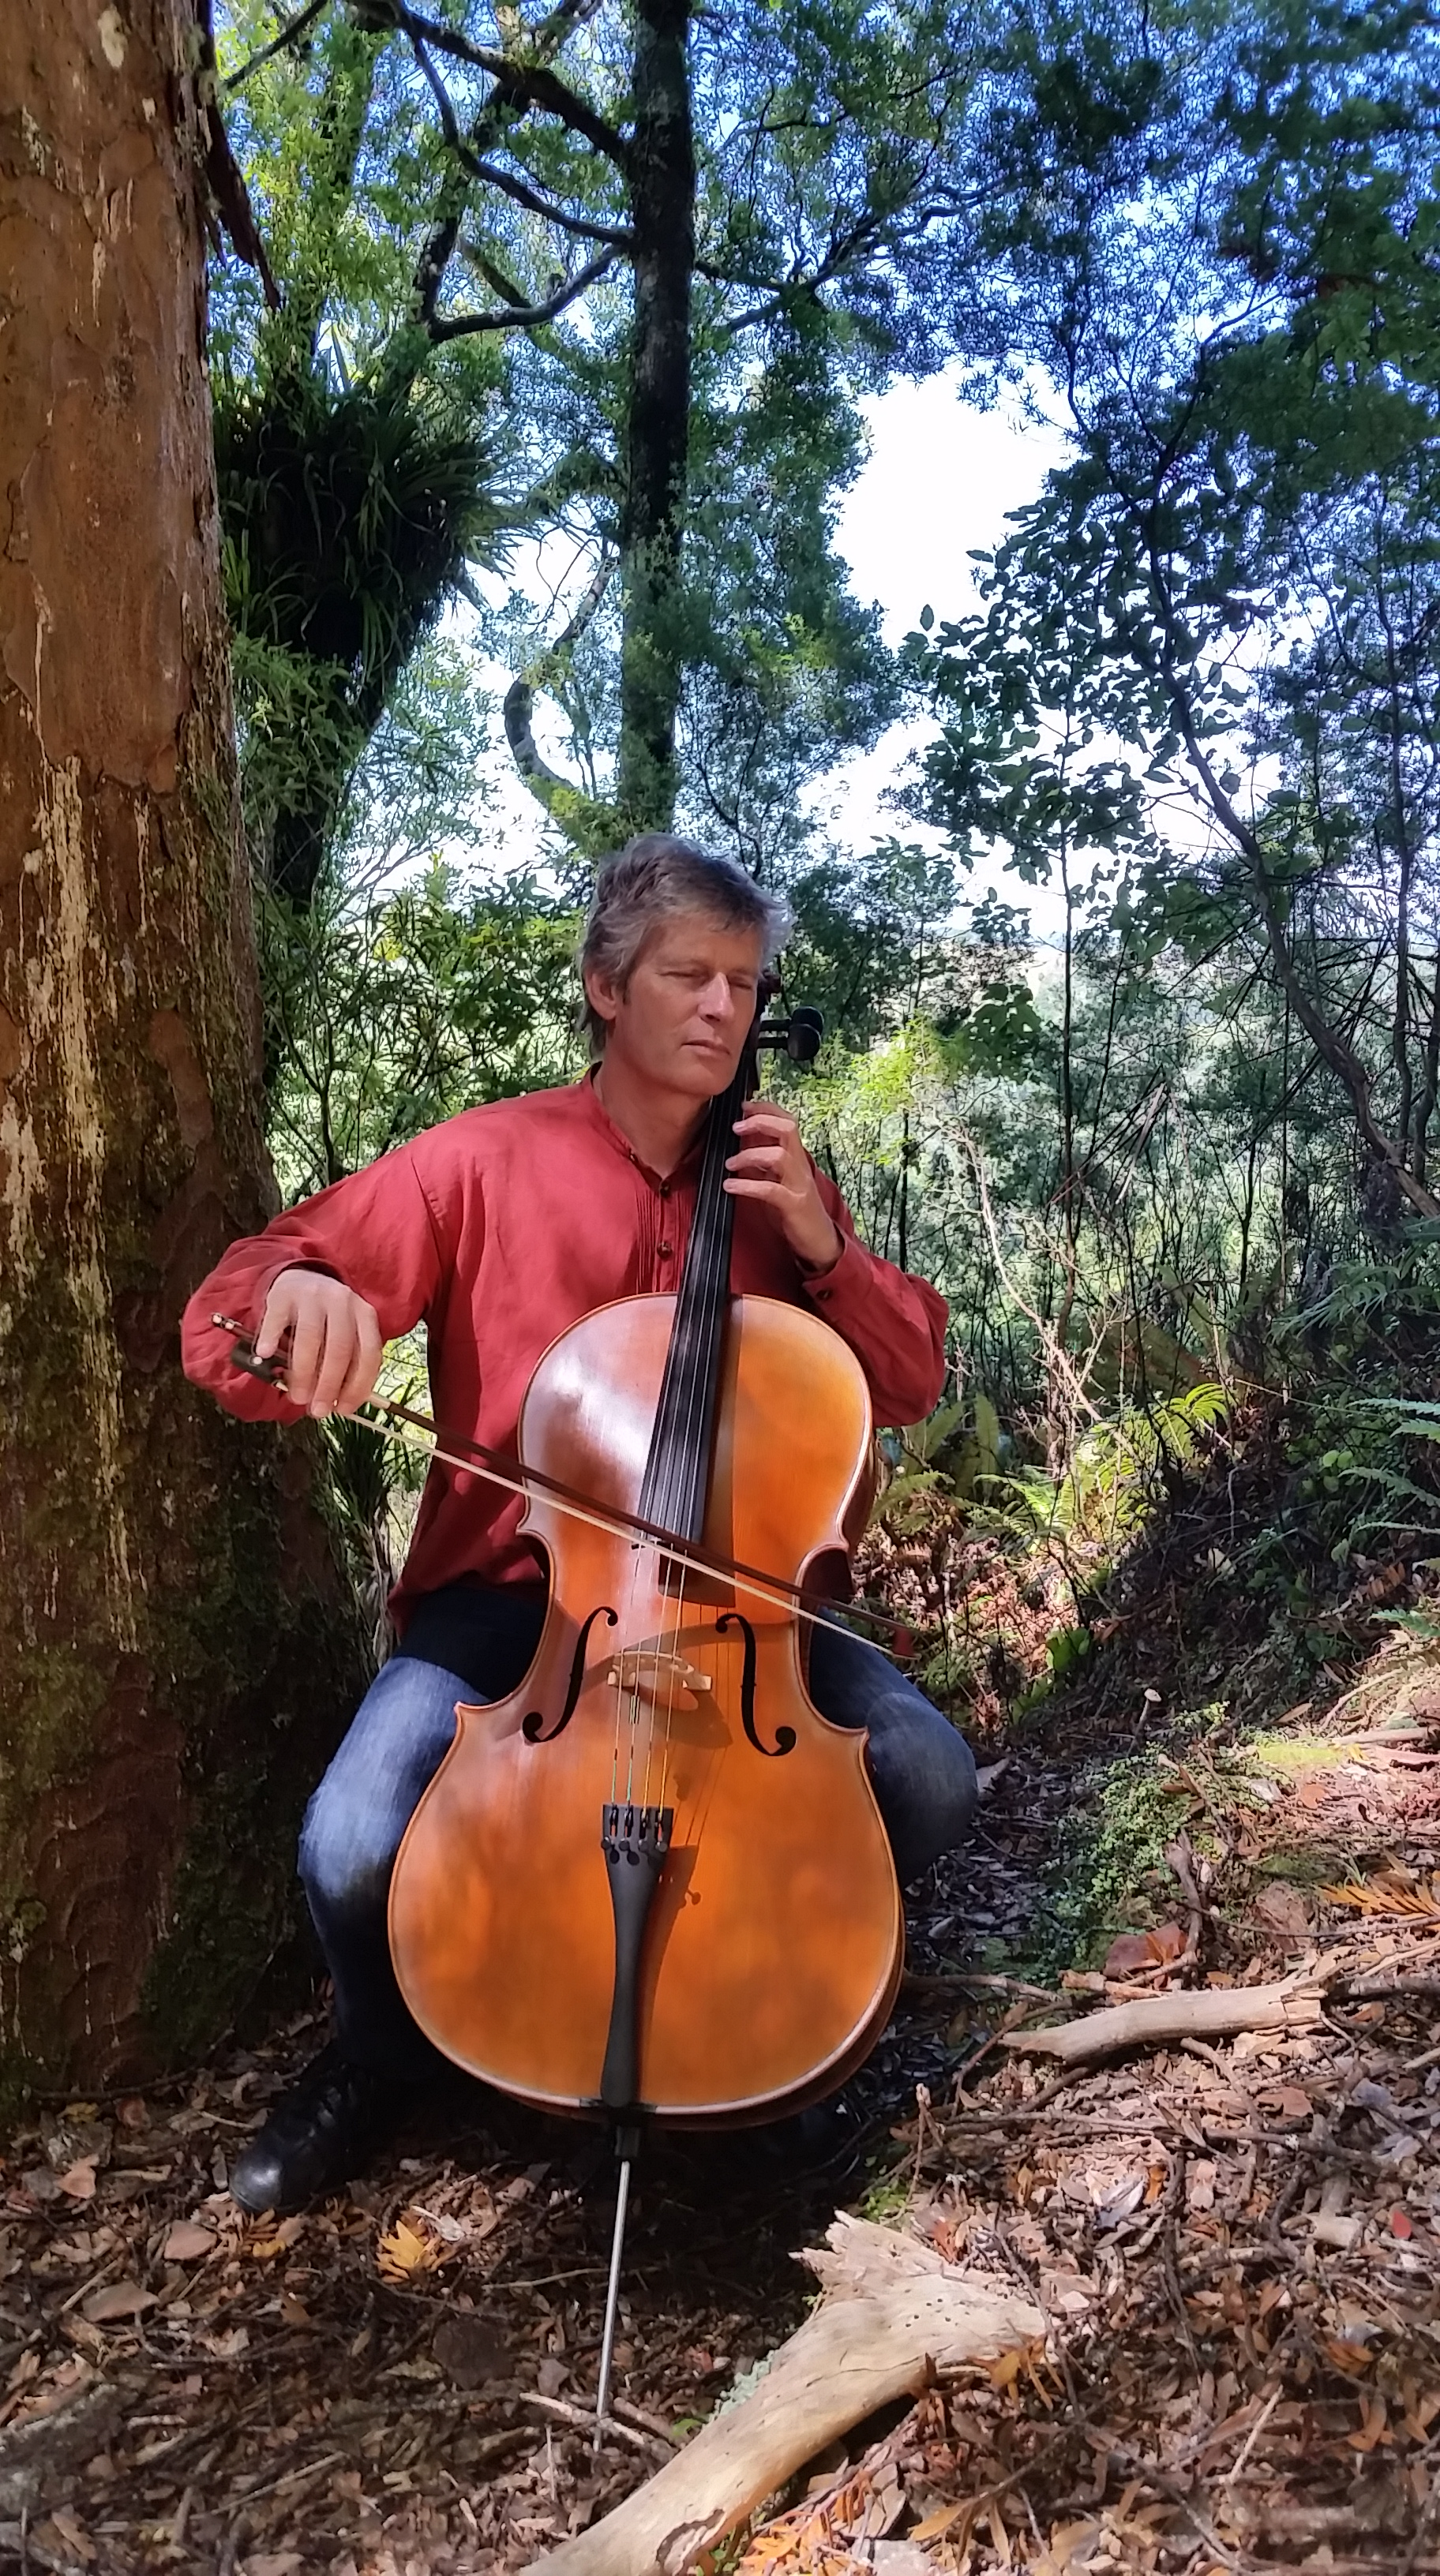 Raeul cello singing tree